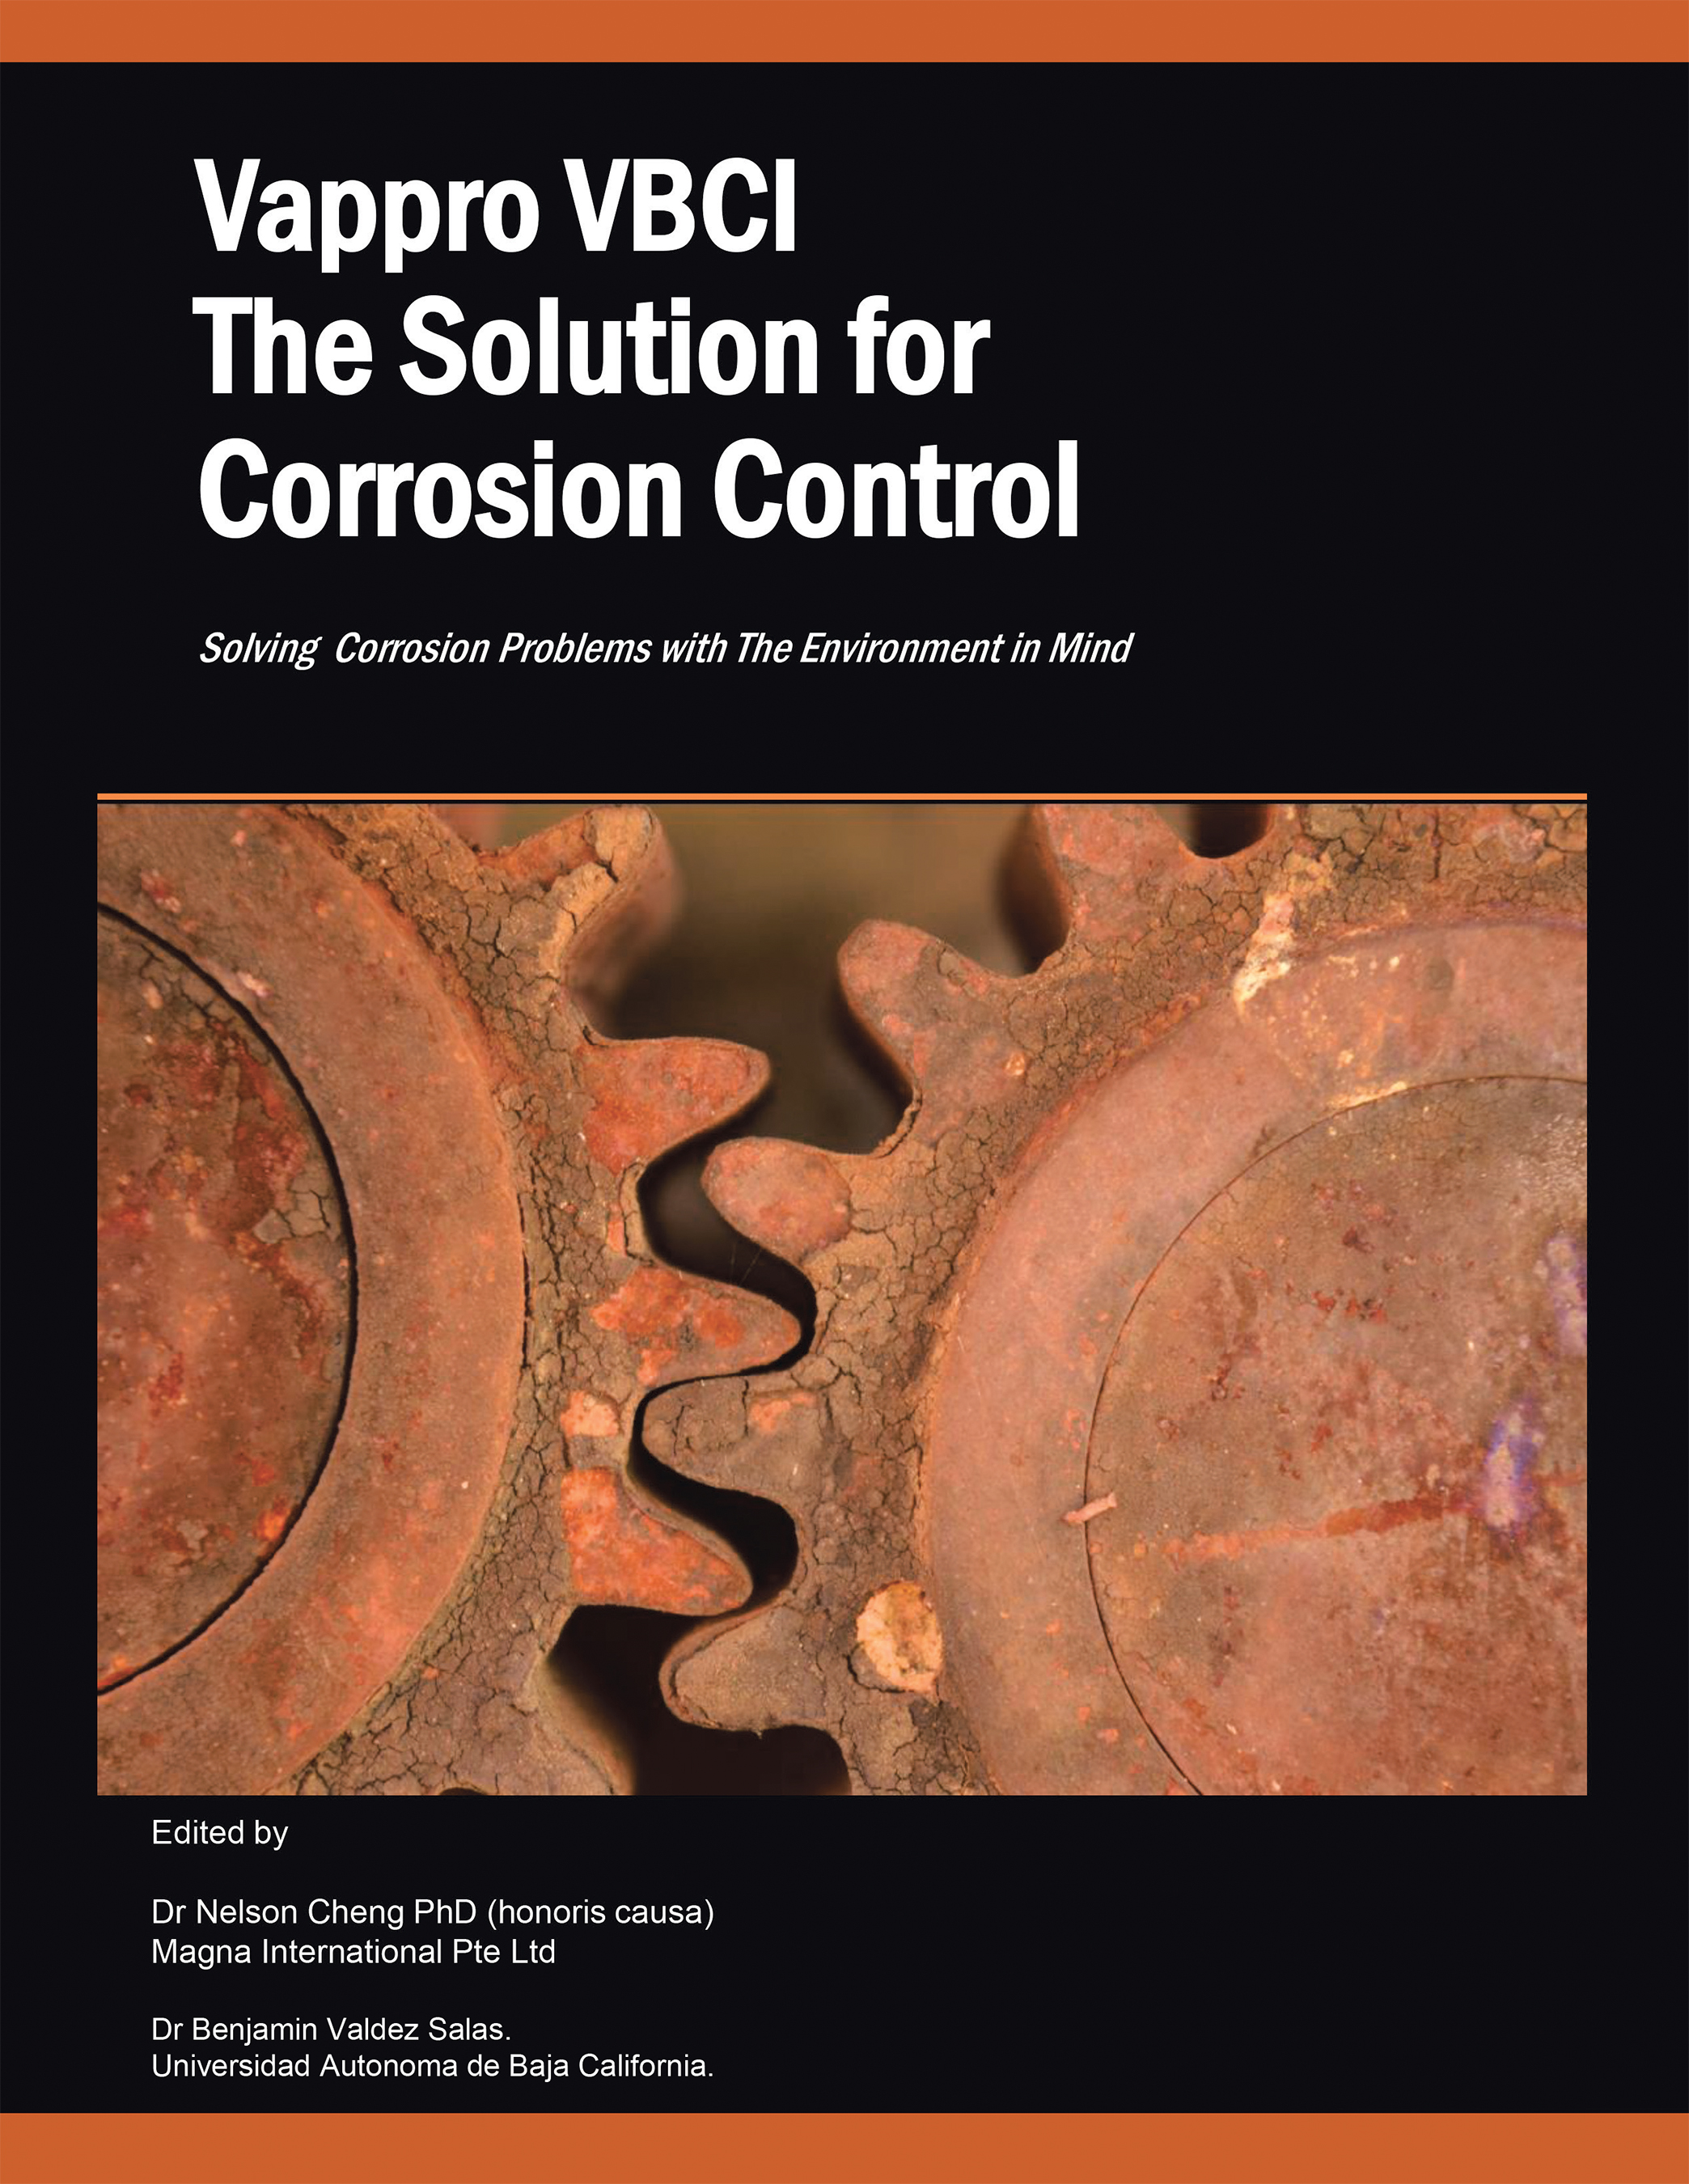 Vappro Vbci the Solution for Corrosion Control